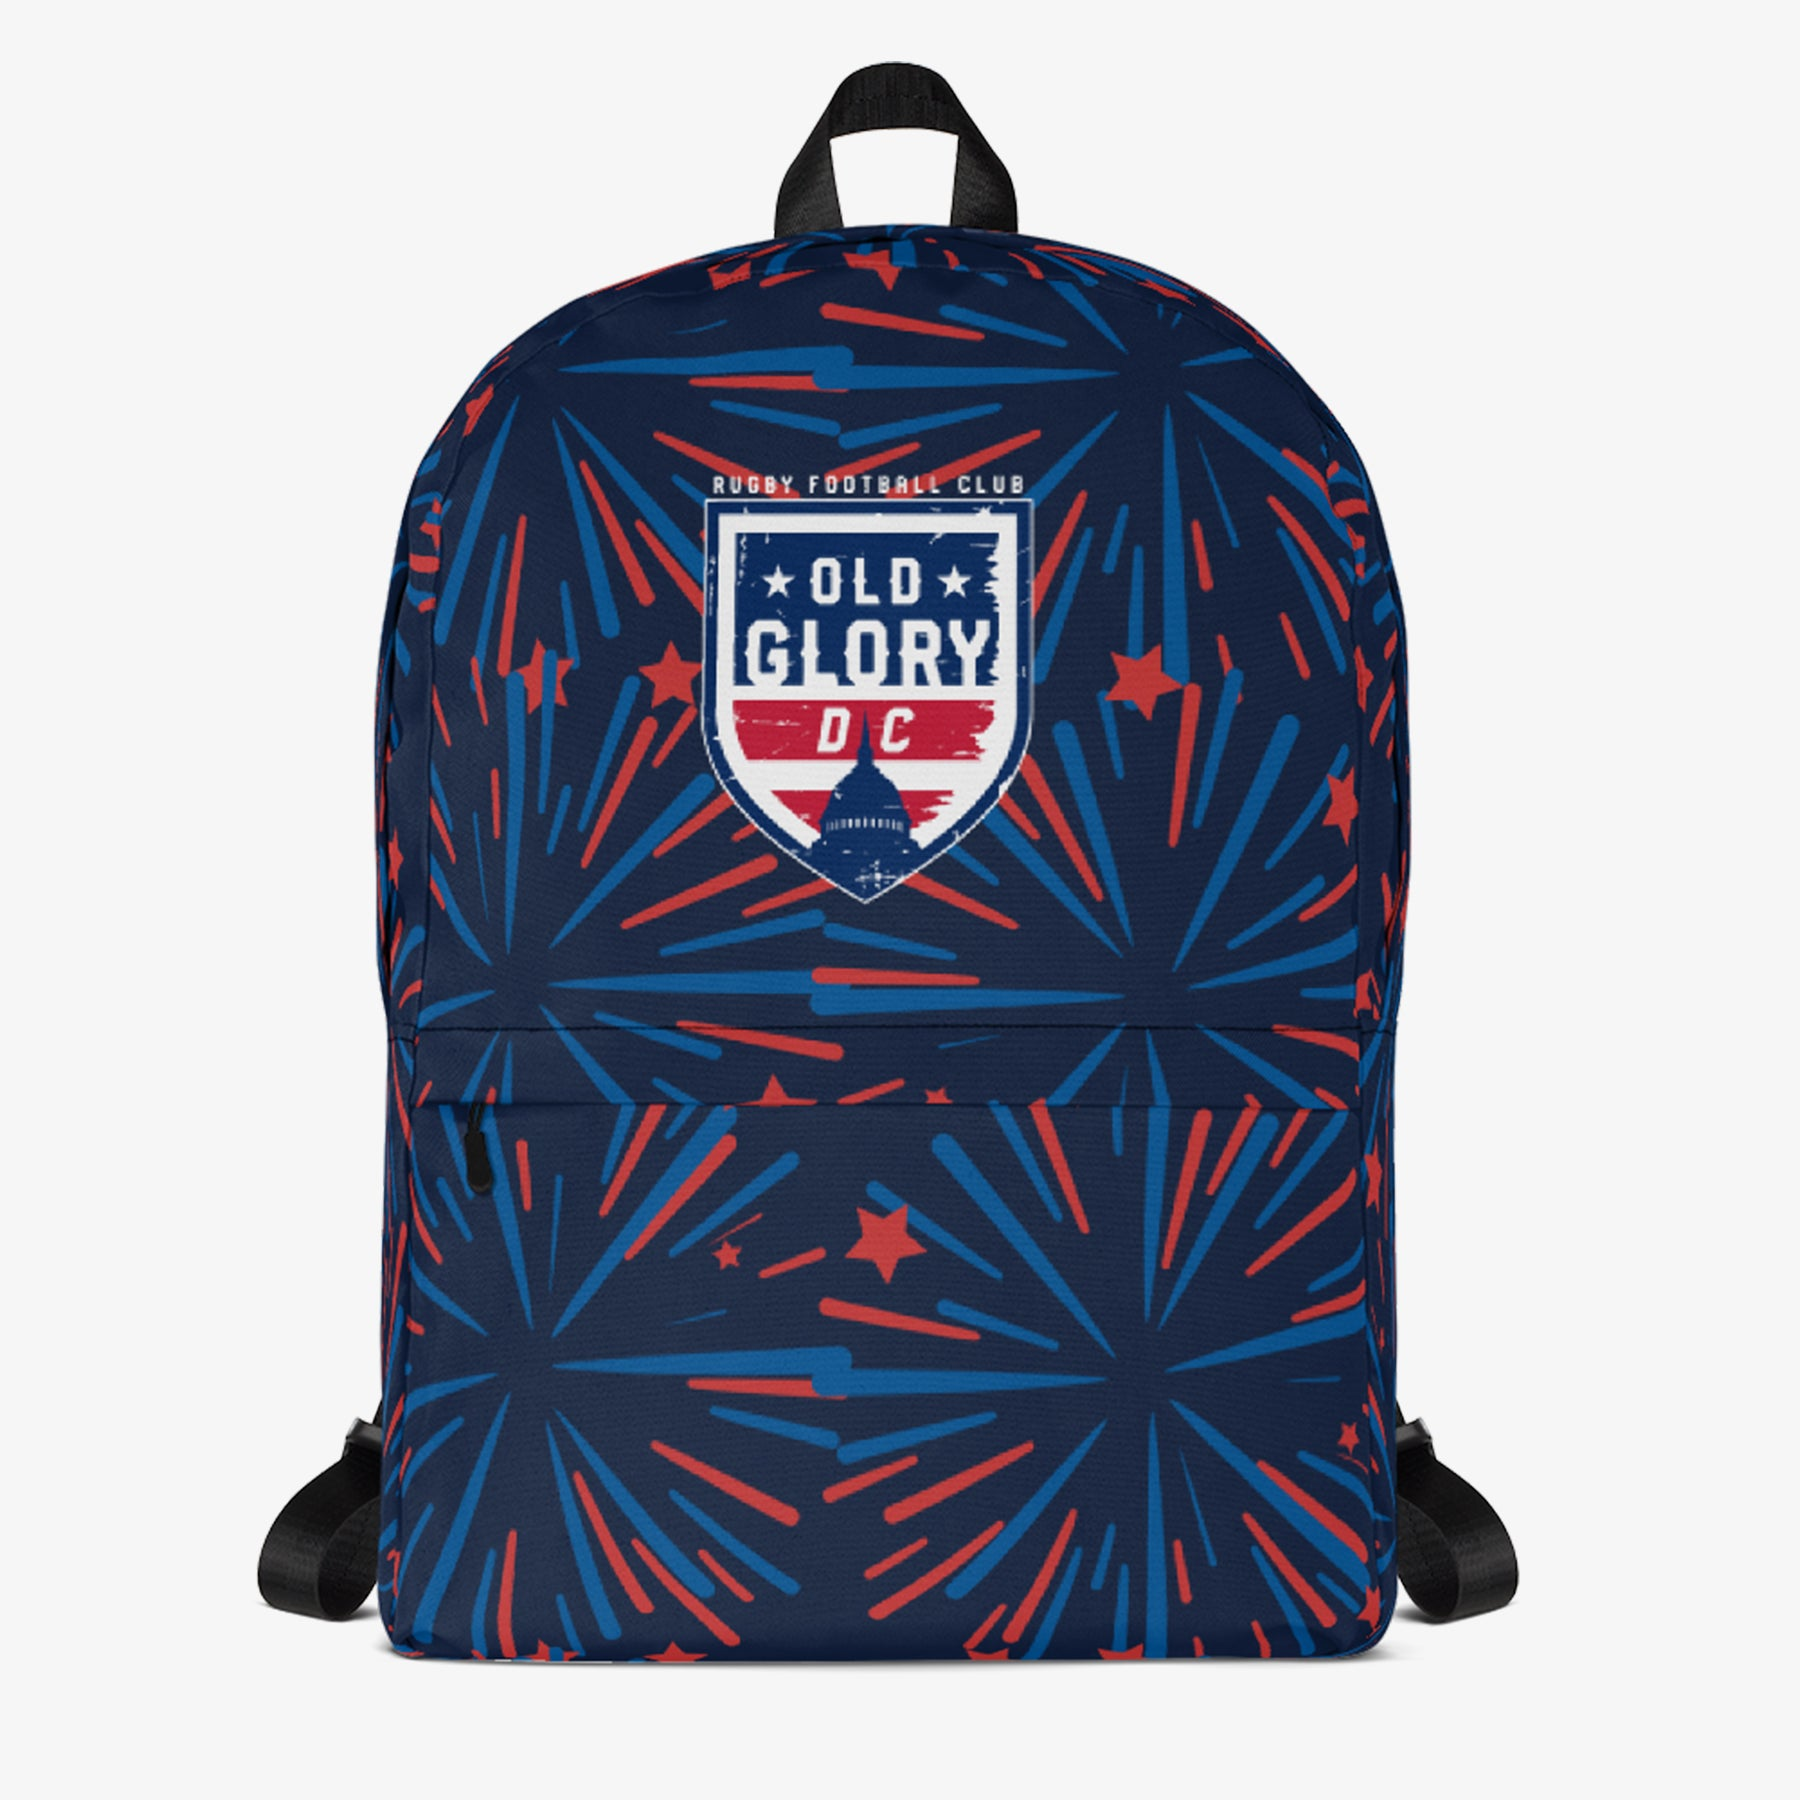 Old Glory DC Bags World Rugby Shop